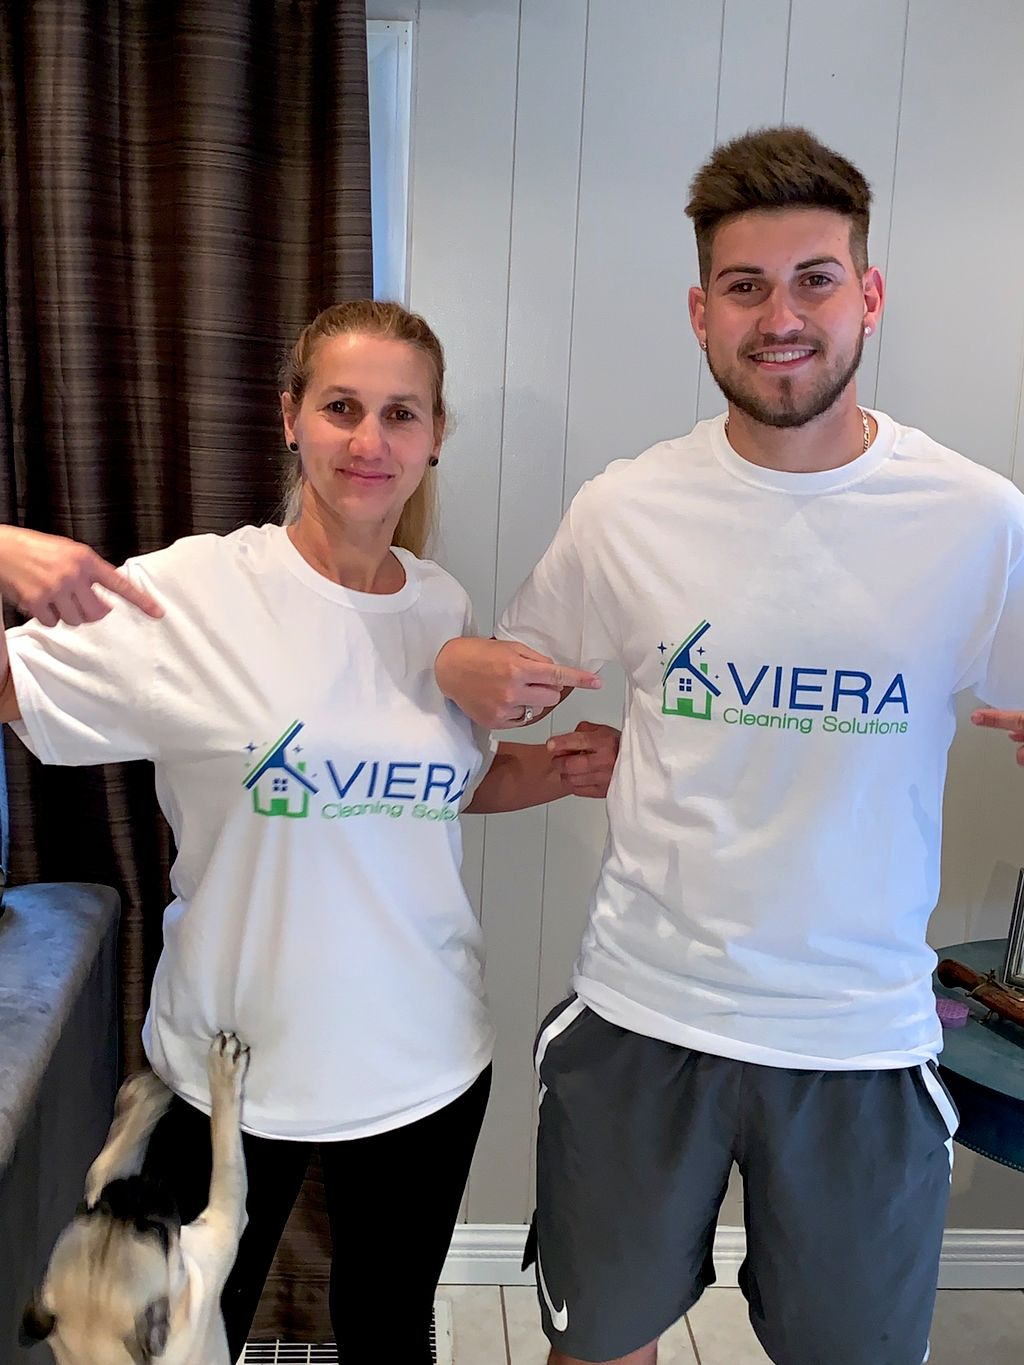 Viera Cleaning Solutions